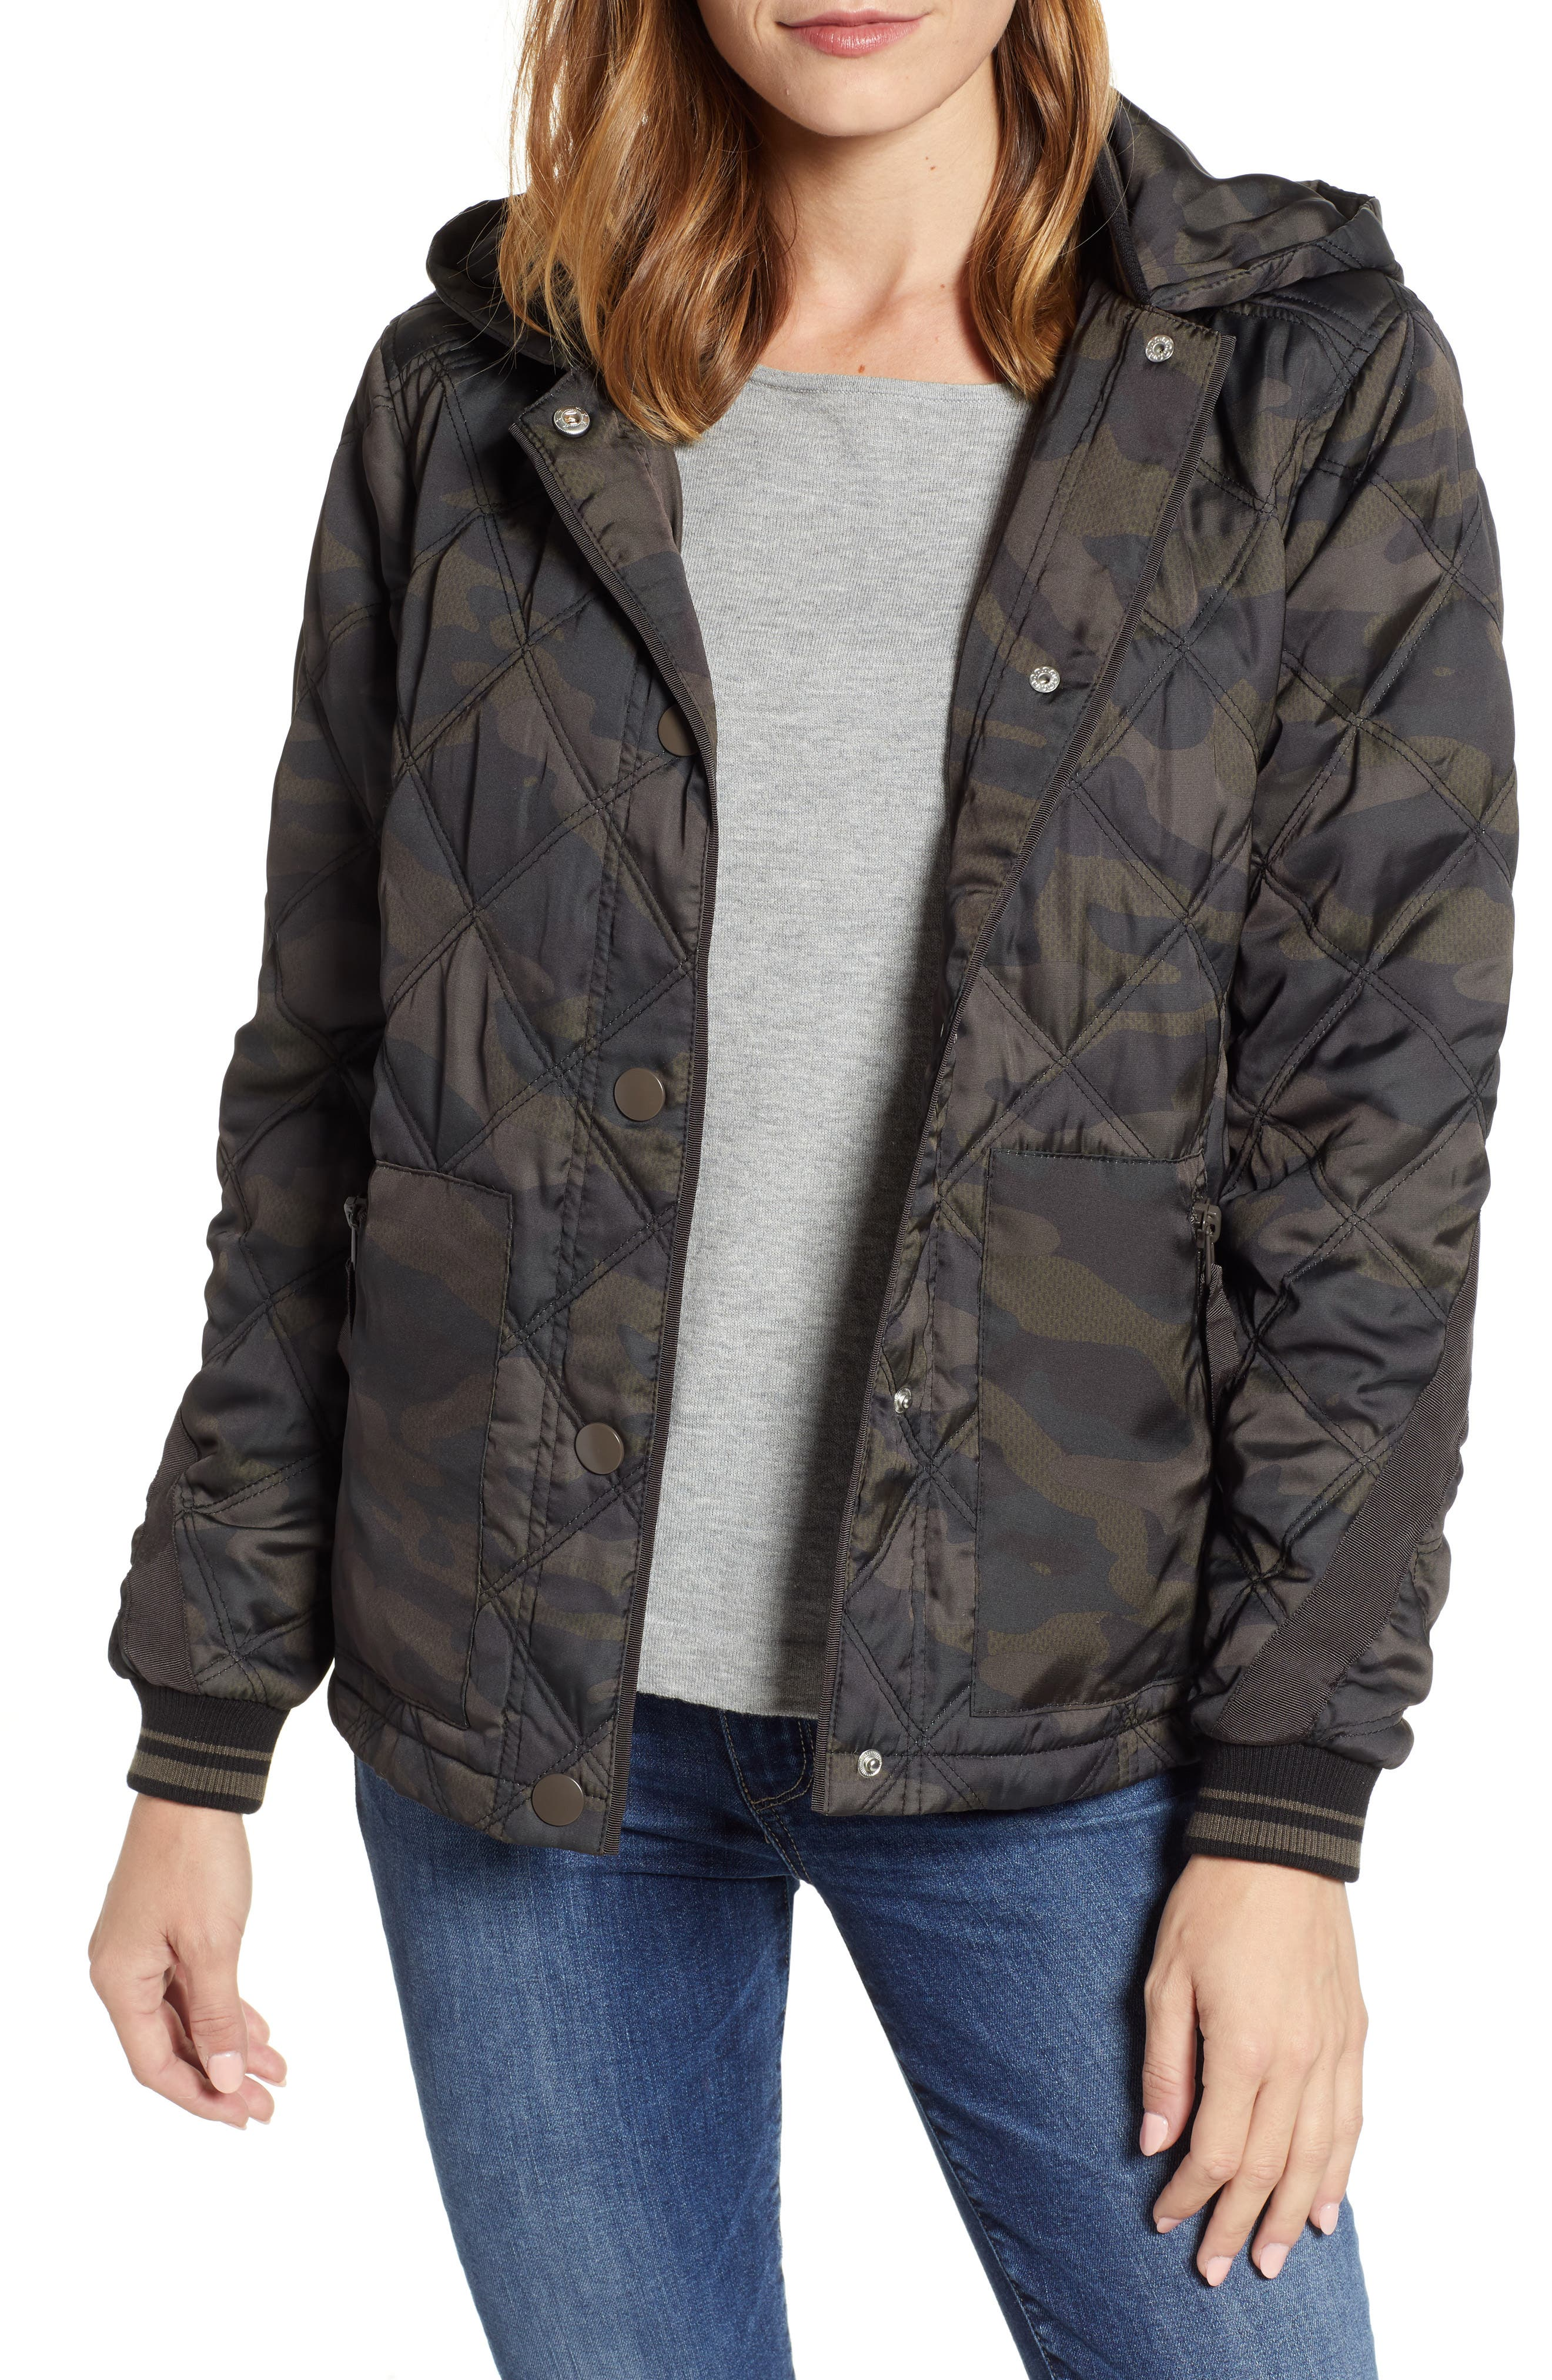 Wit & Wisdom Lightweight Quilted Jacket, Green